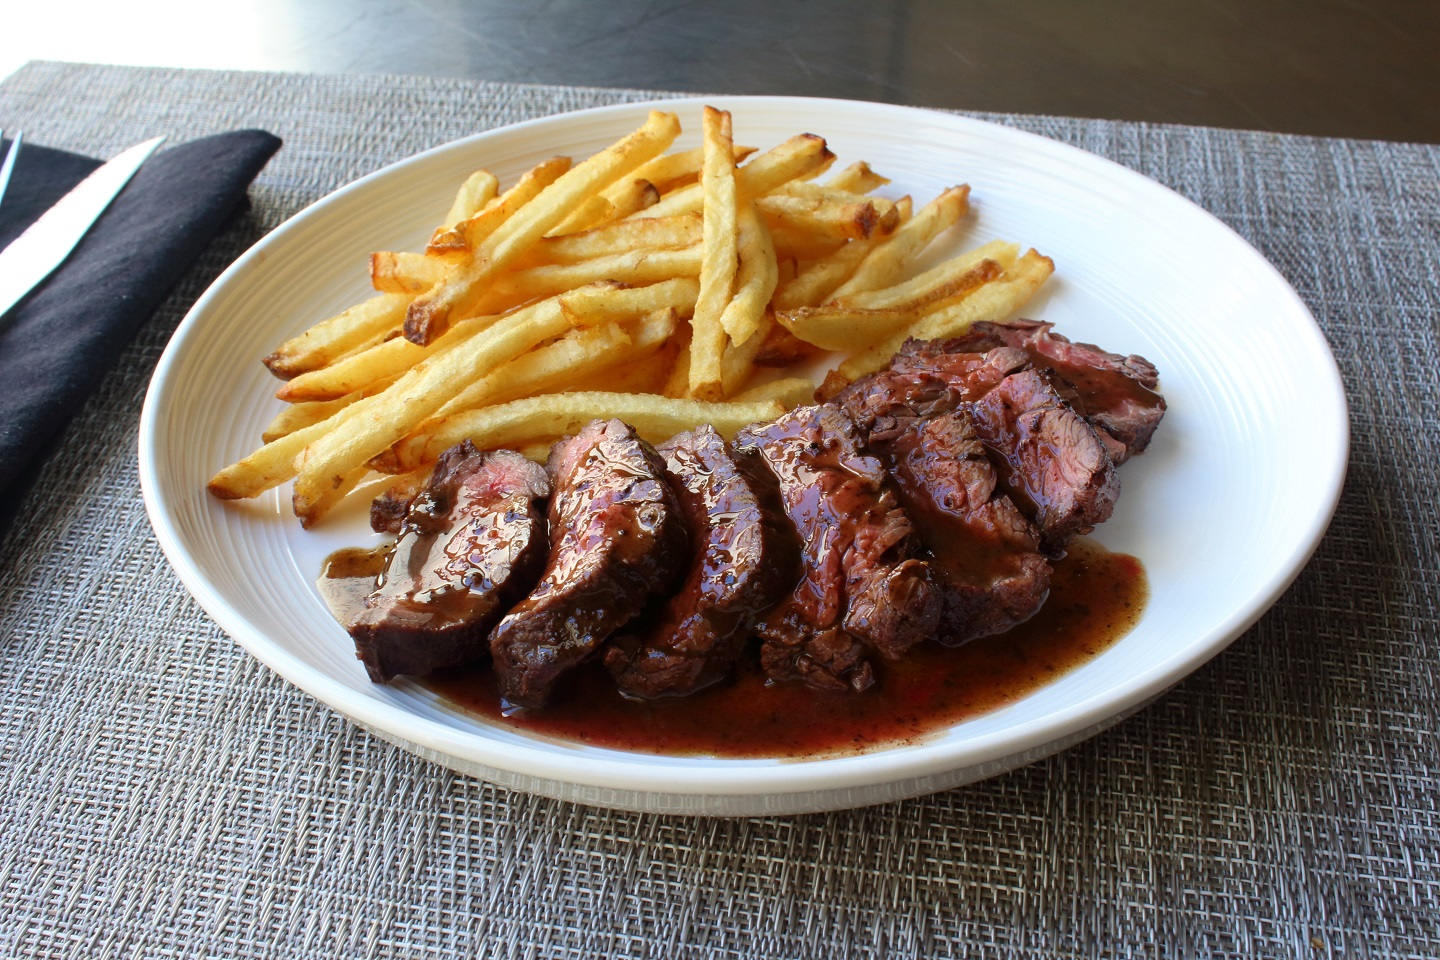 Butcher's Steak on a plate with fries